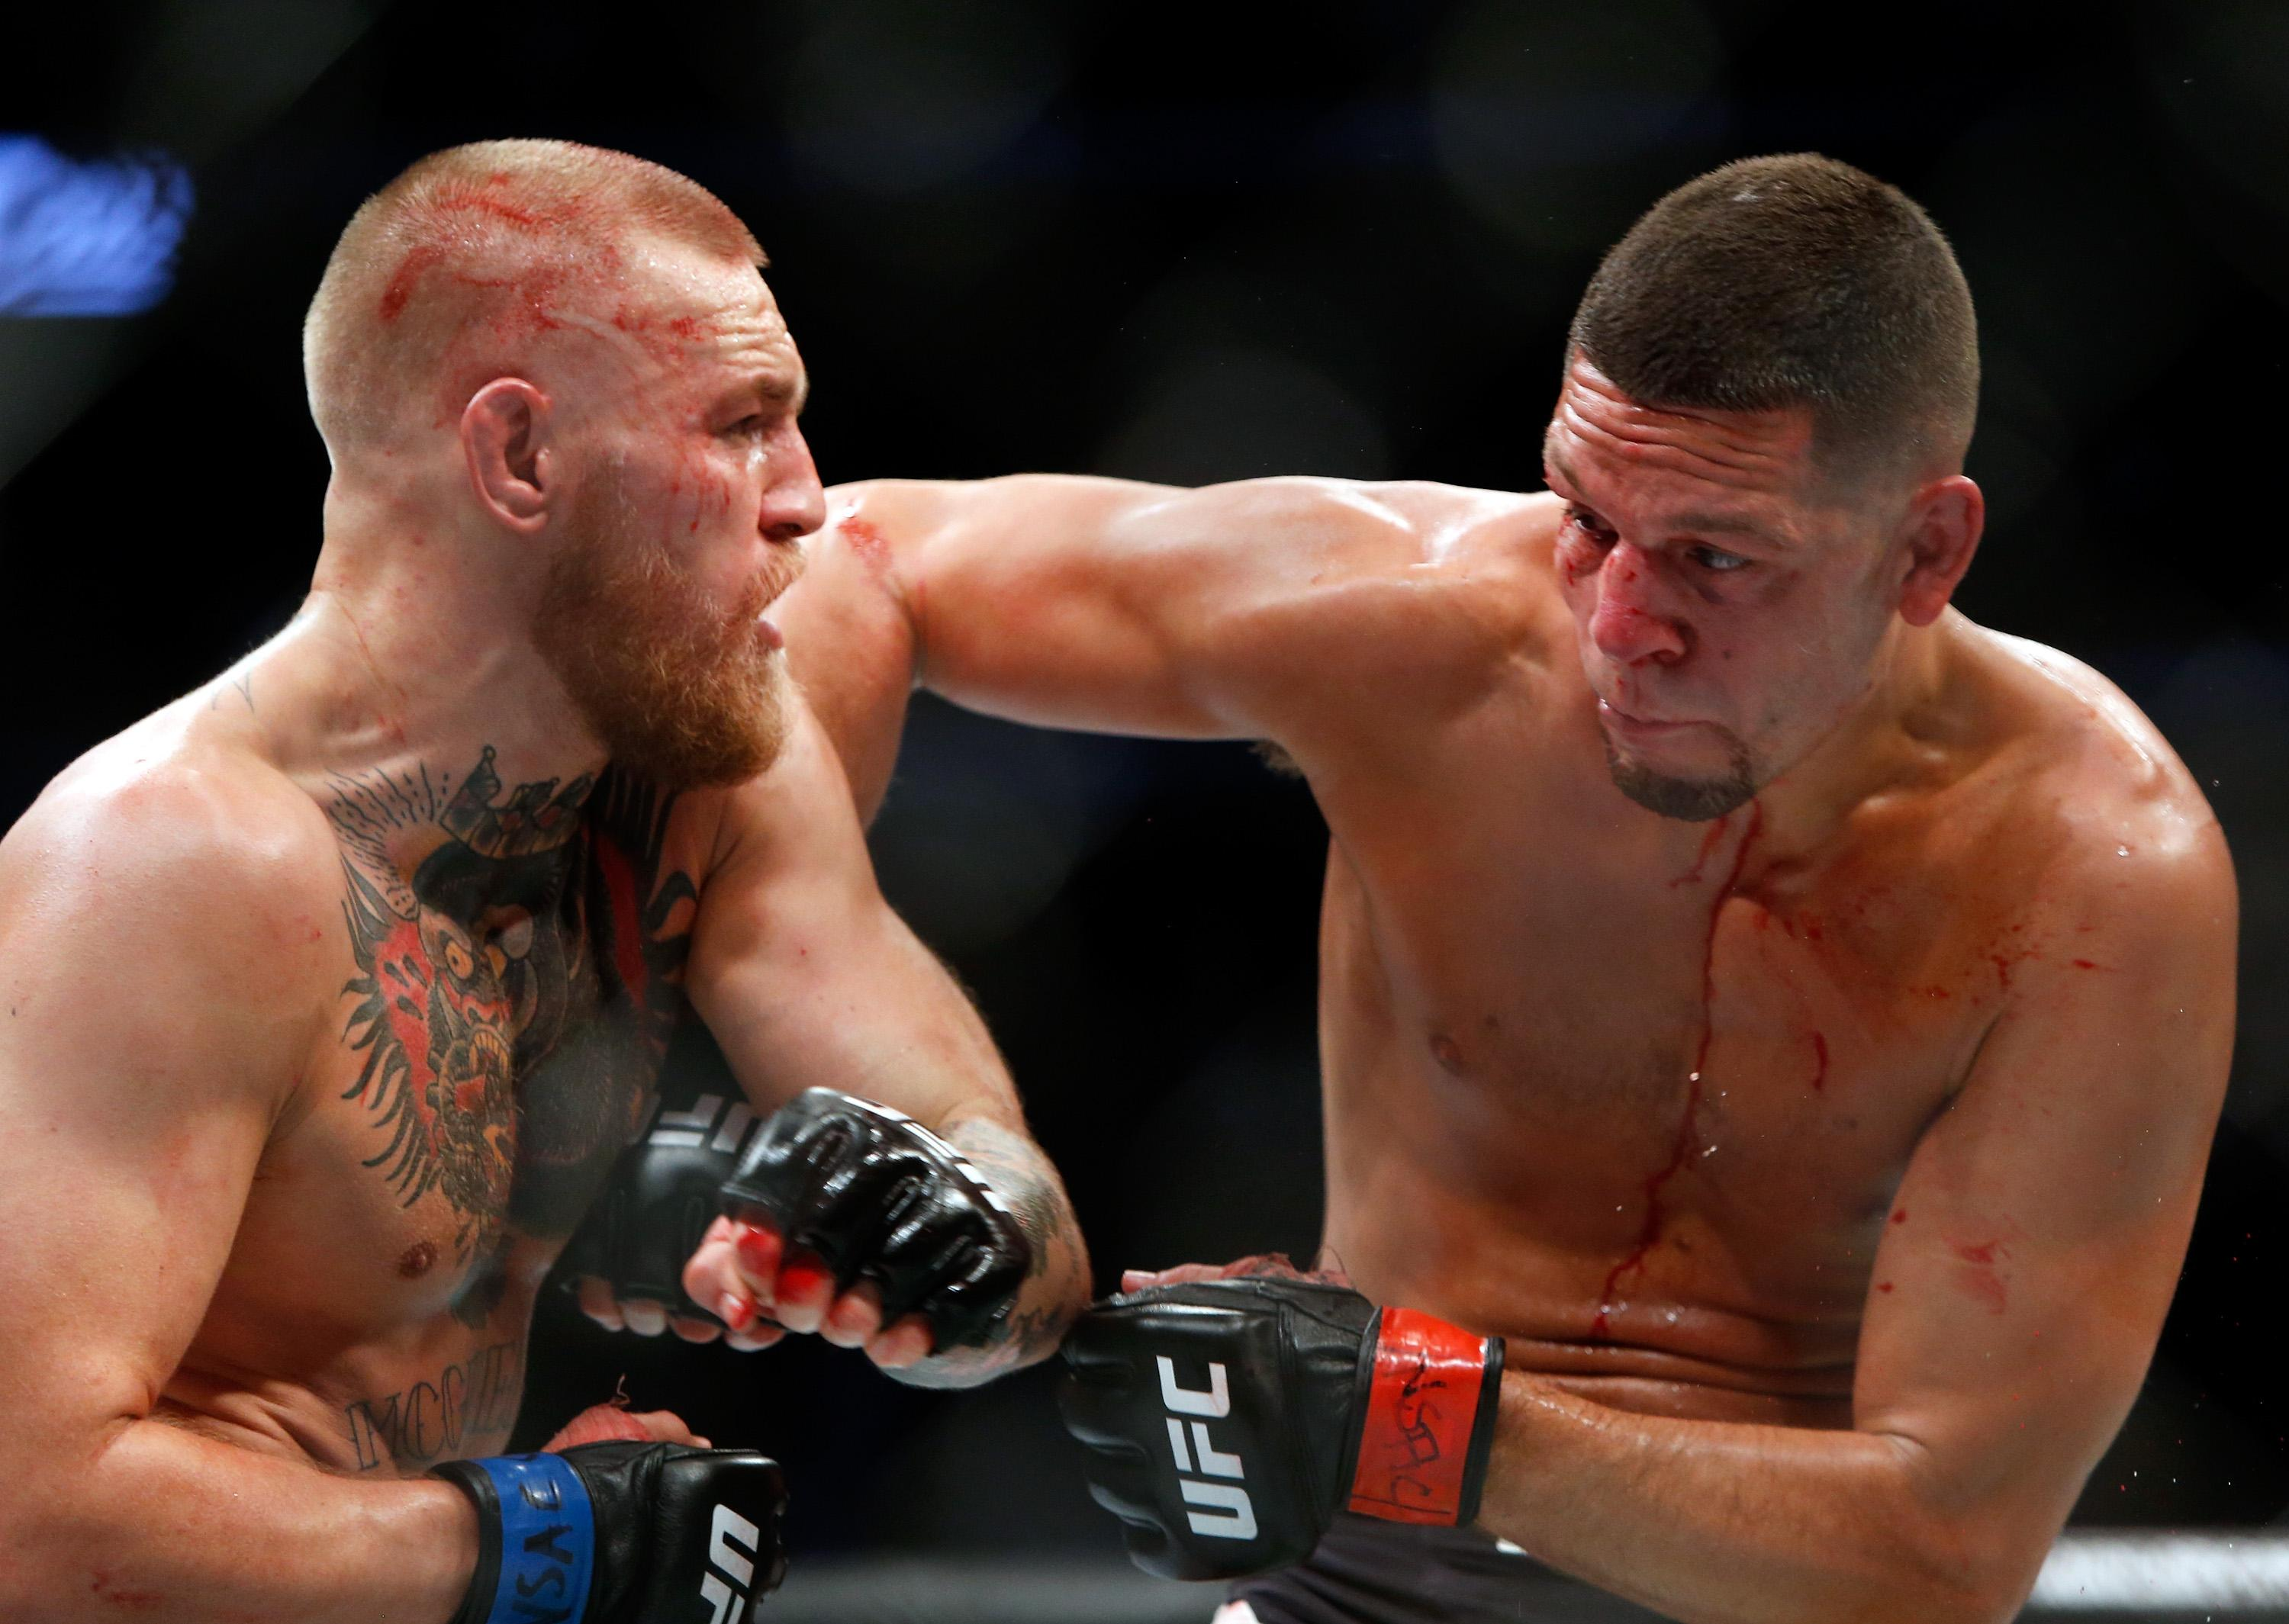 Diaz and Poirier will reportedly feature on November 3 at UFC 230